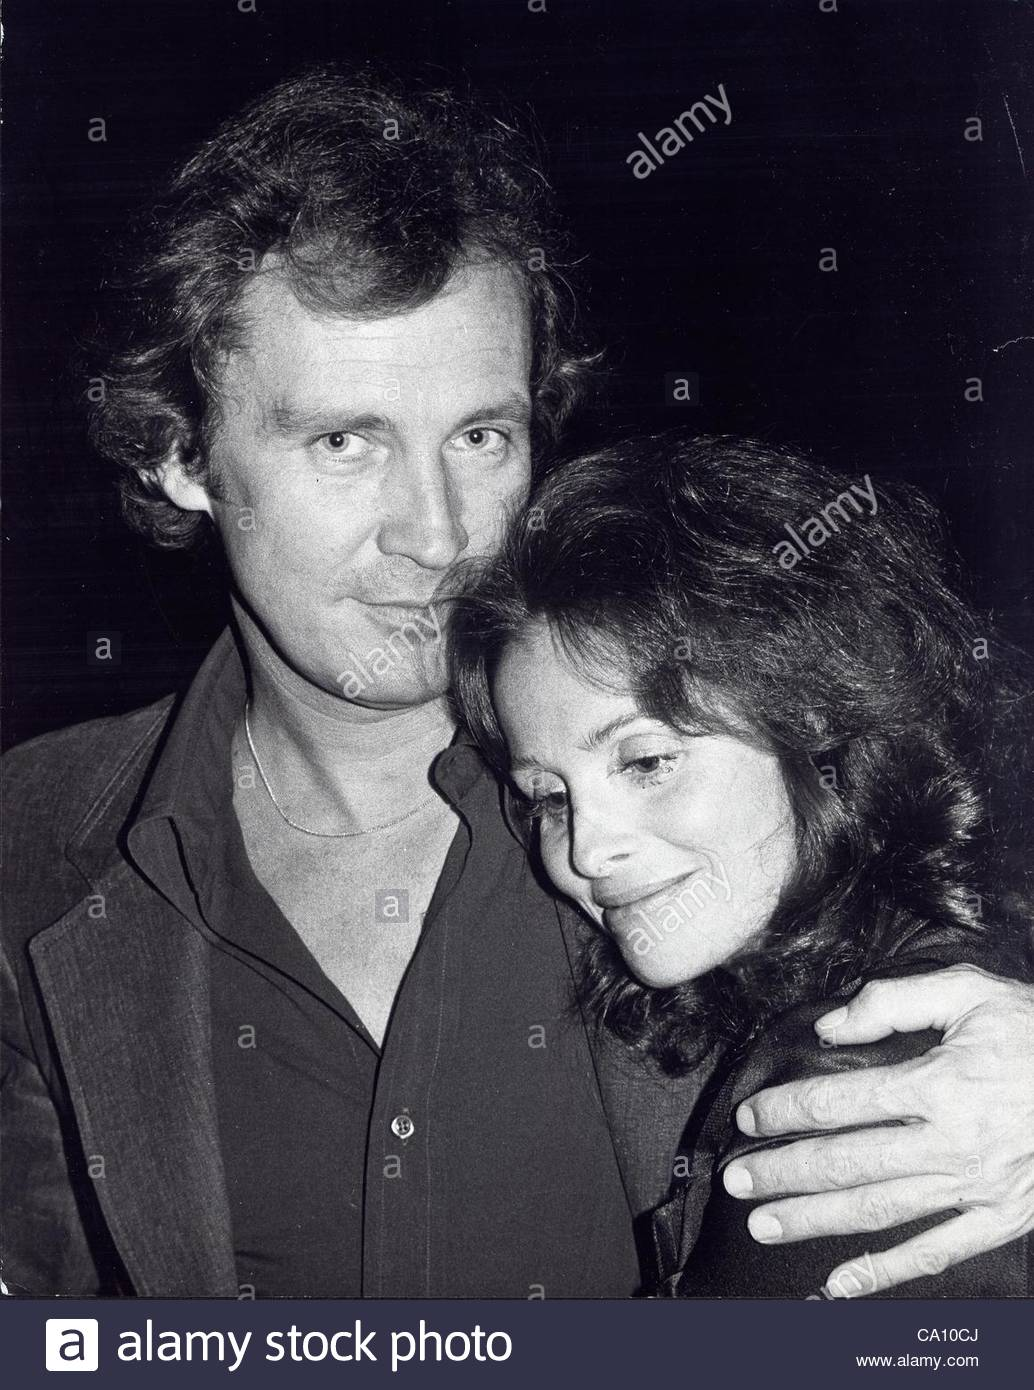 ROY THINNES with wife Lynn Loring.(Credit Image: © Ralph Dominguez/Globe Photos/ZUMAPRESS.com)Stock Photo